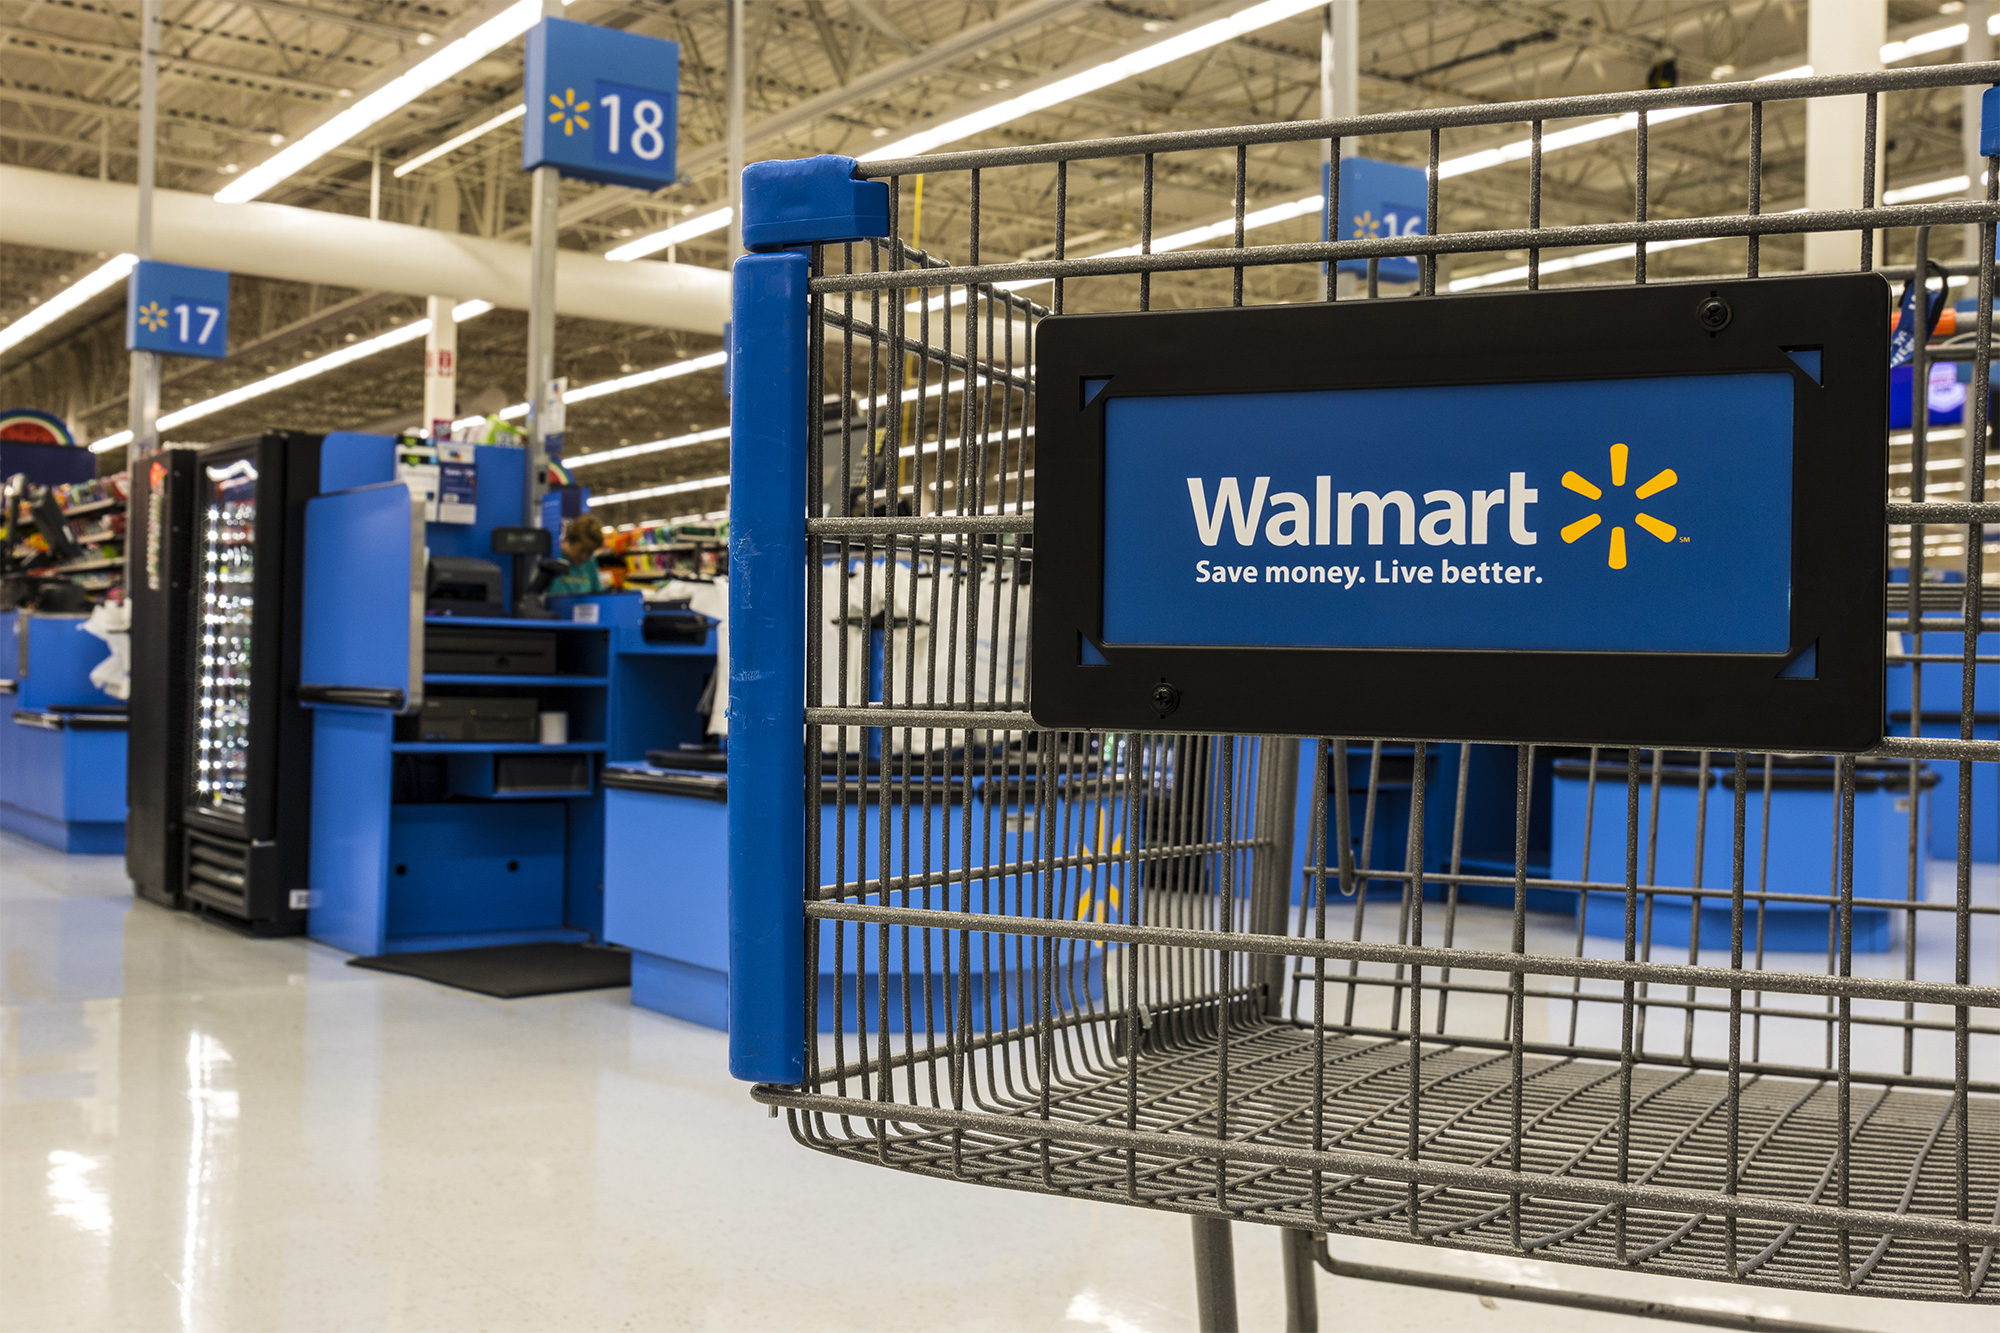 Walmart announces it will close all stores for Thanksgiving Day